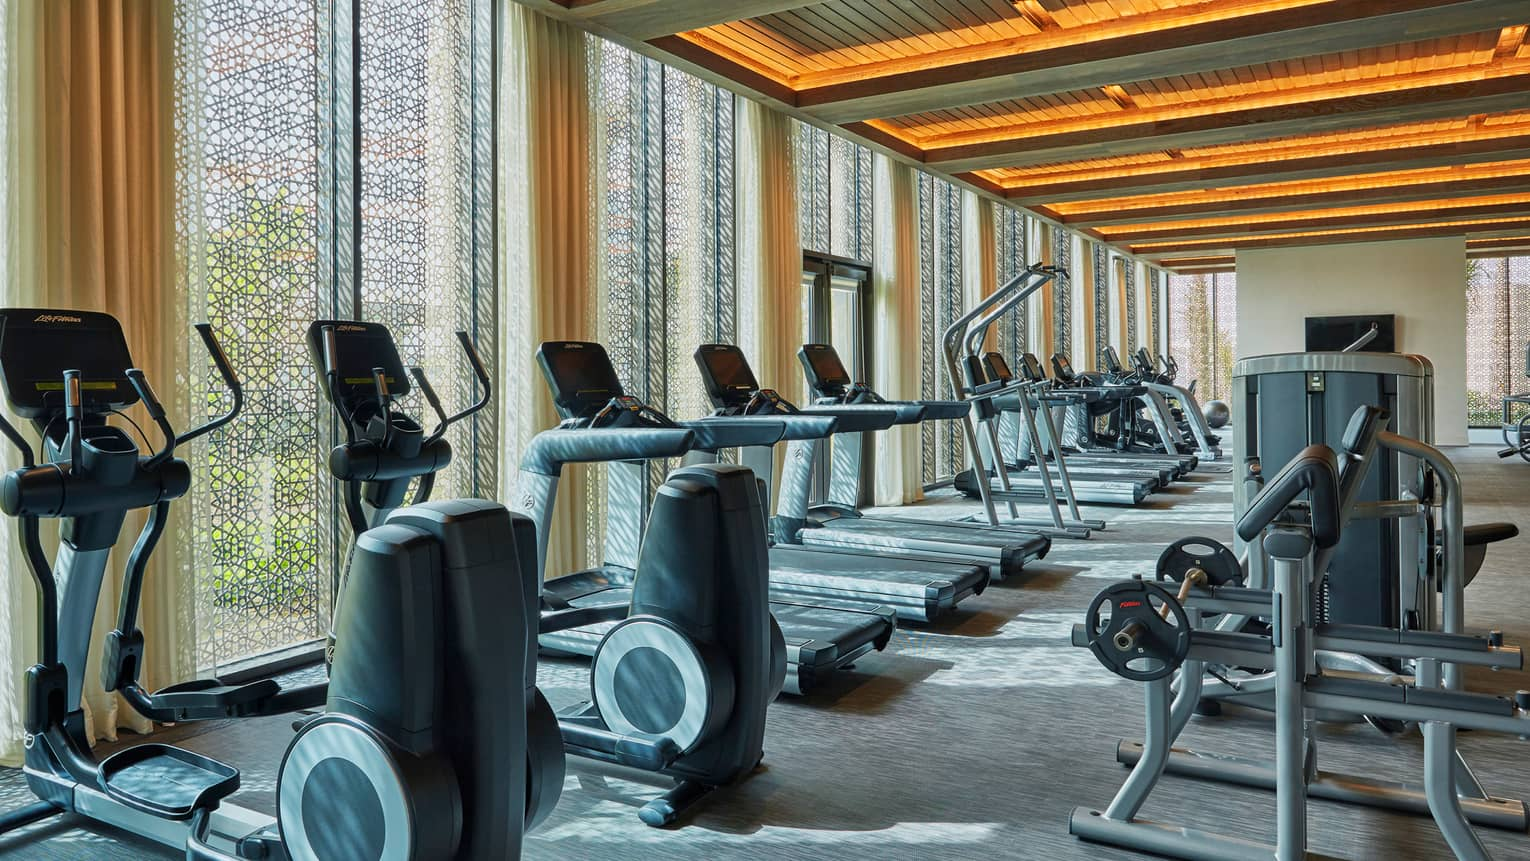 Fitness Centre cardio machine lined up against window with screen, recessed wood beam ceilings with orange lights